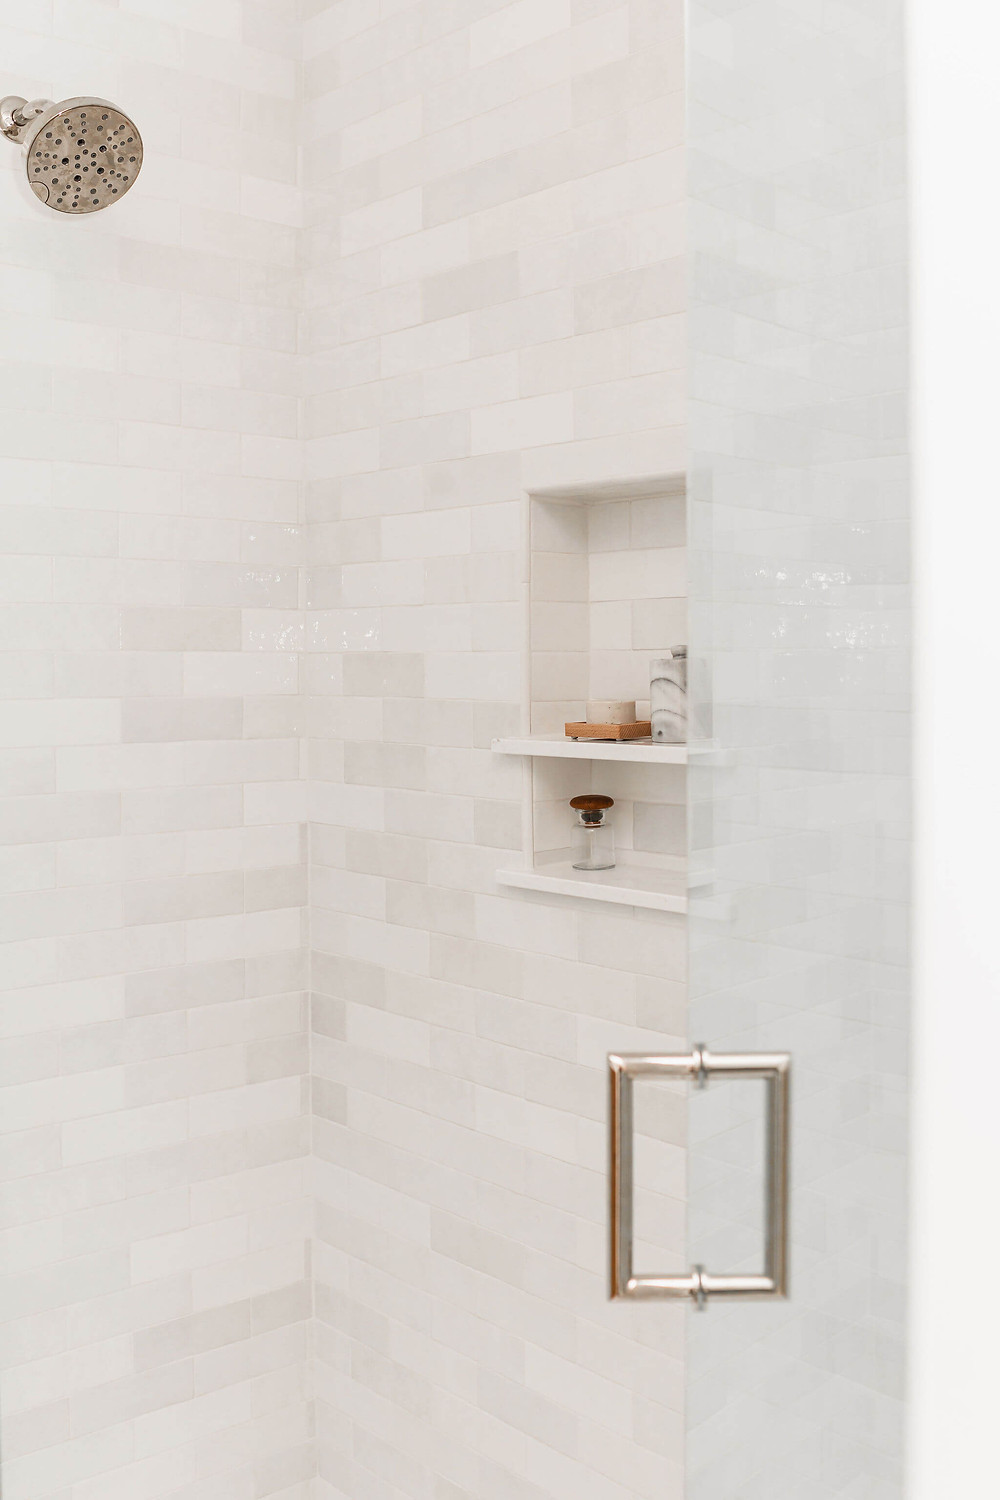 Primary owners suite walk in shower with white artisan subway wall tile and matte white penny round shower pan tile, polished nickel finishes